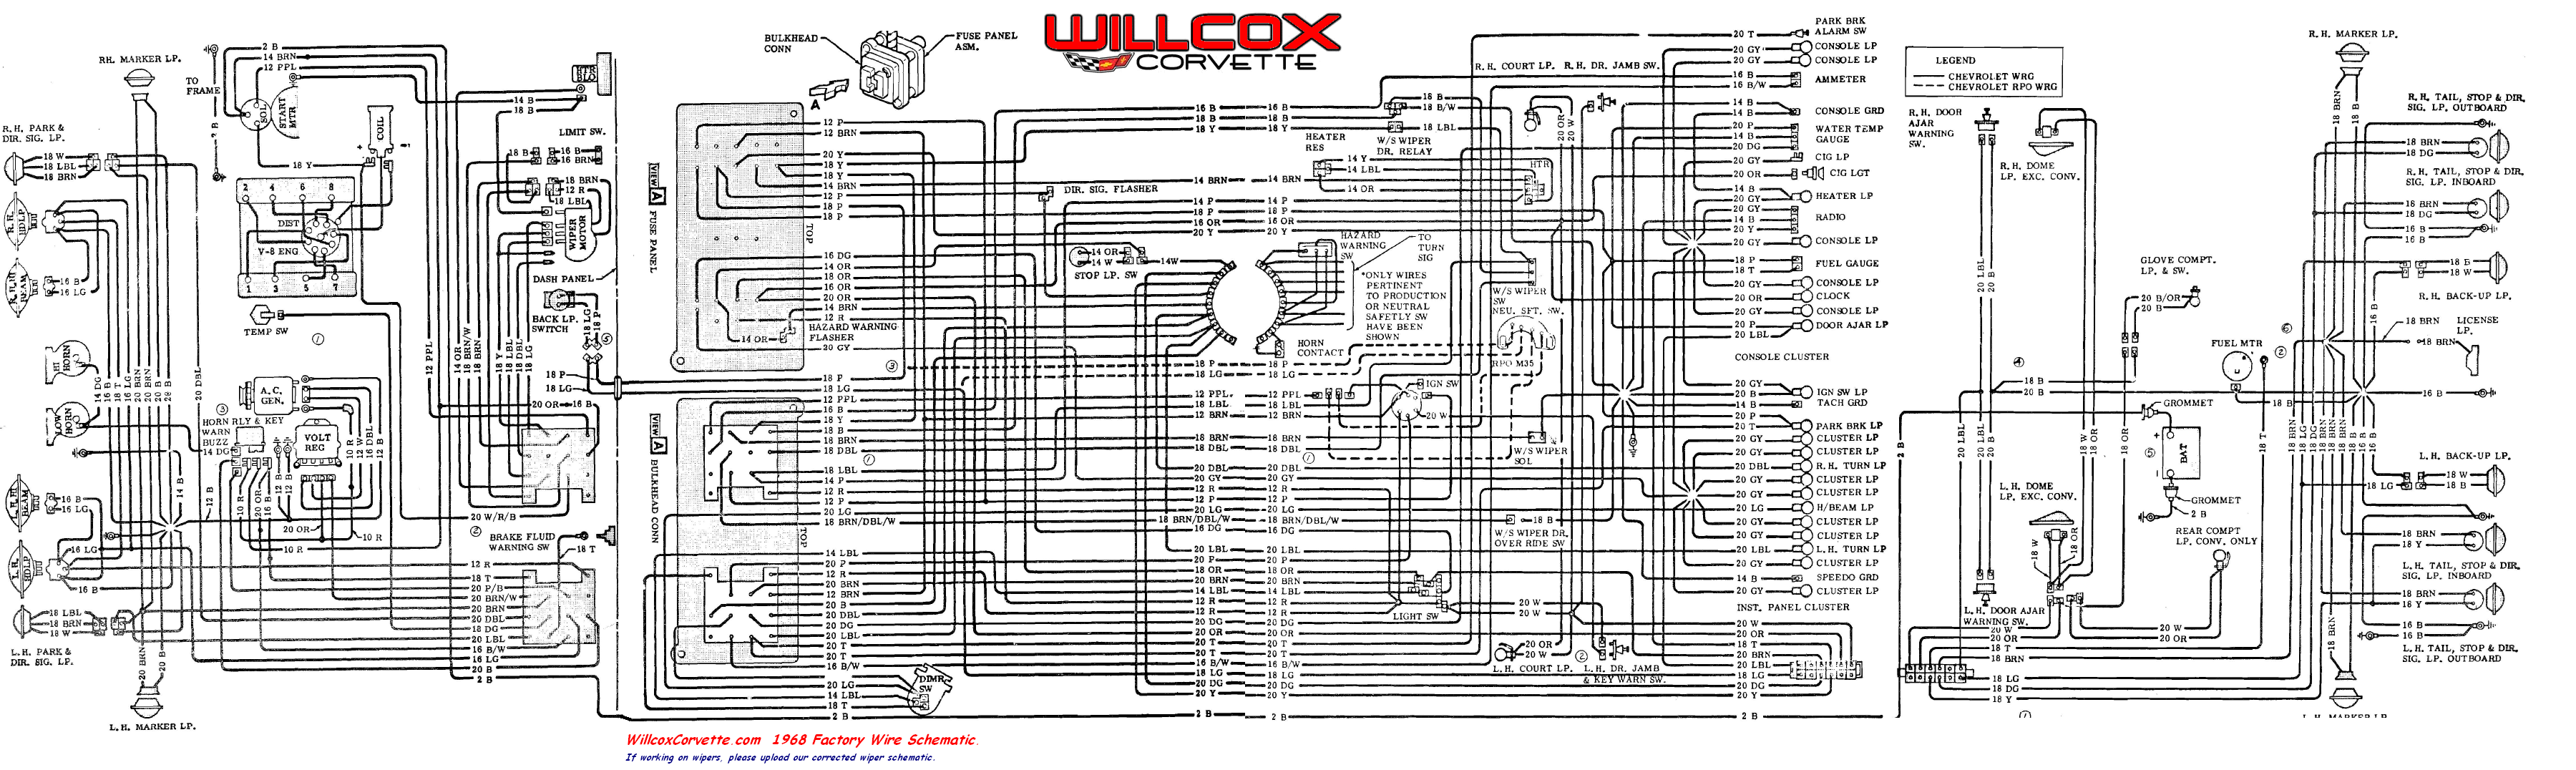 68 wire tracer corvette wiring diagram corvette wiring diagrams instruction 1979 corvette wiring diagram at webbmarketing.co